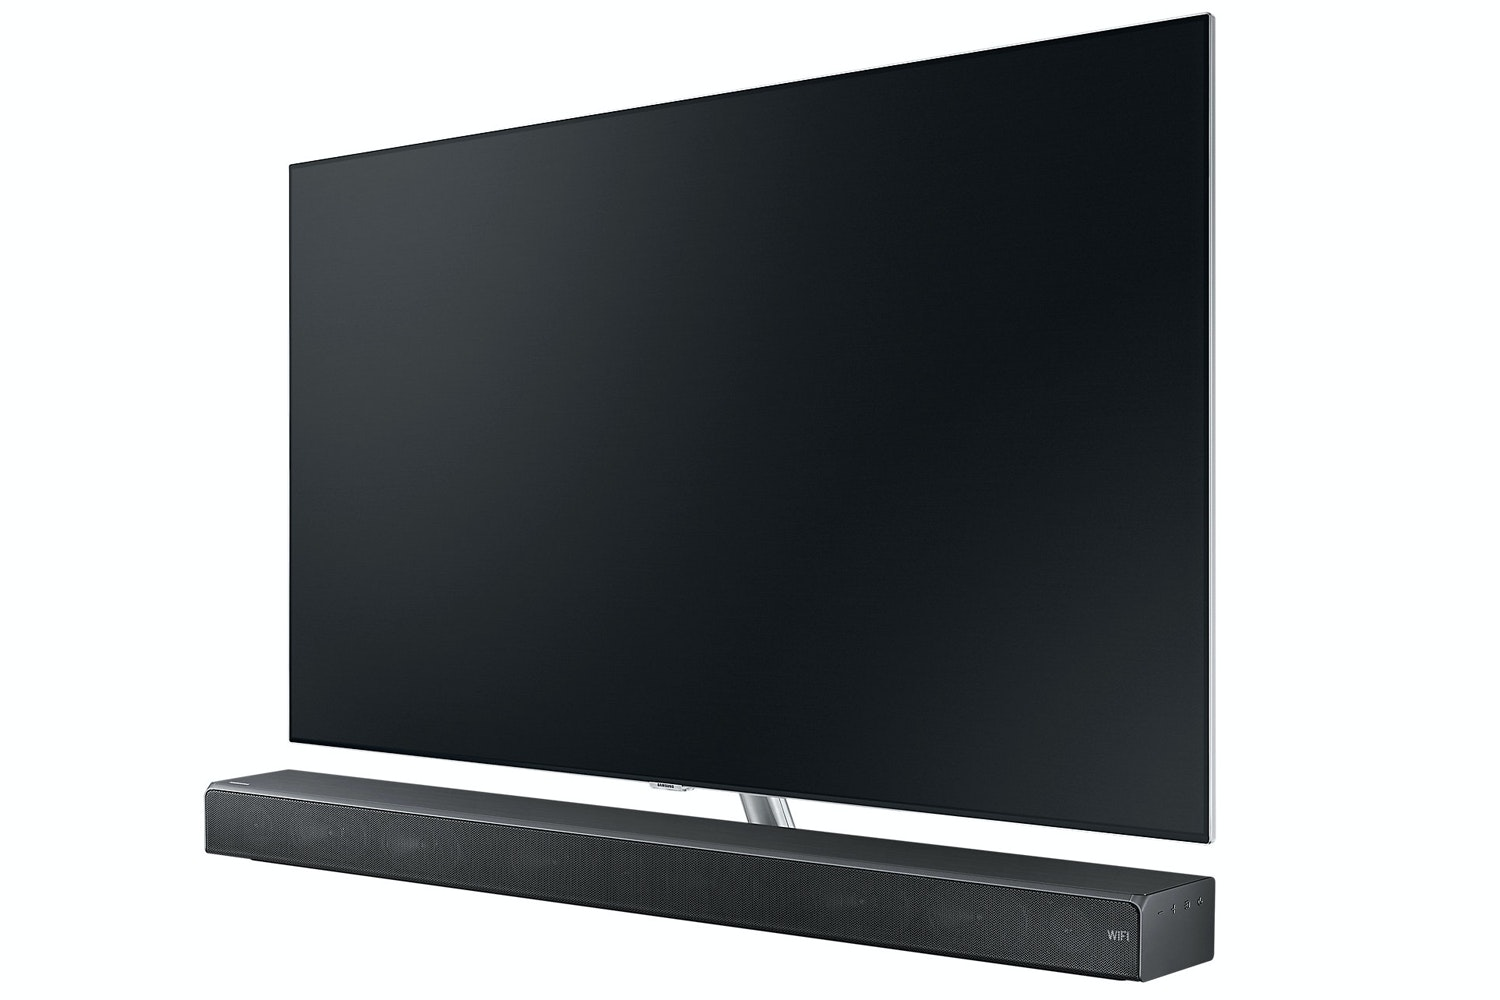 Samsung All In One Smart Soundbar | HW-MS650/XU